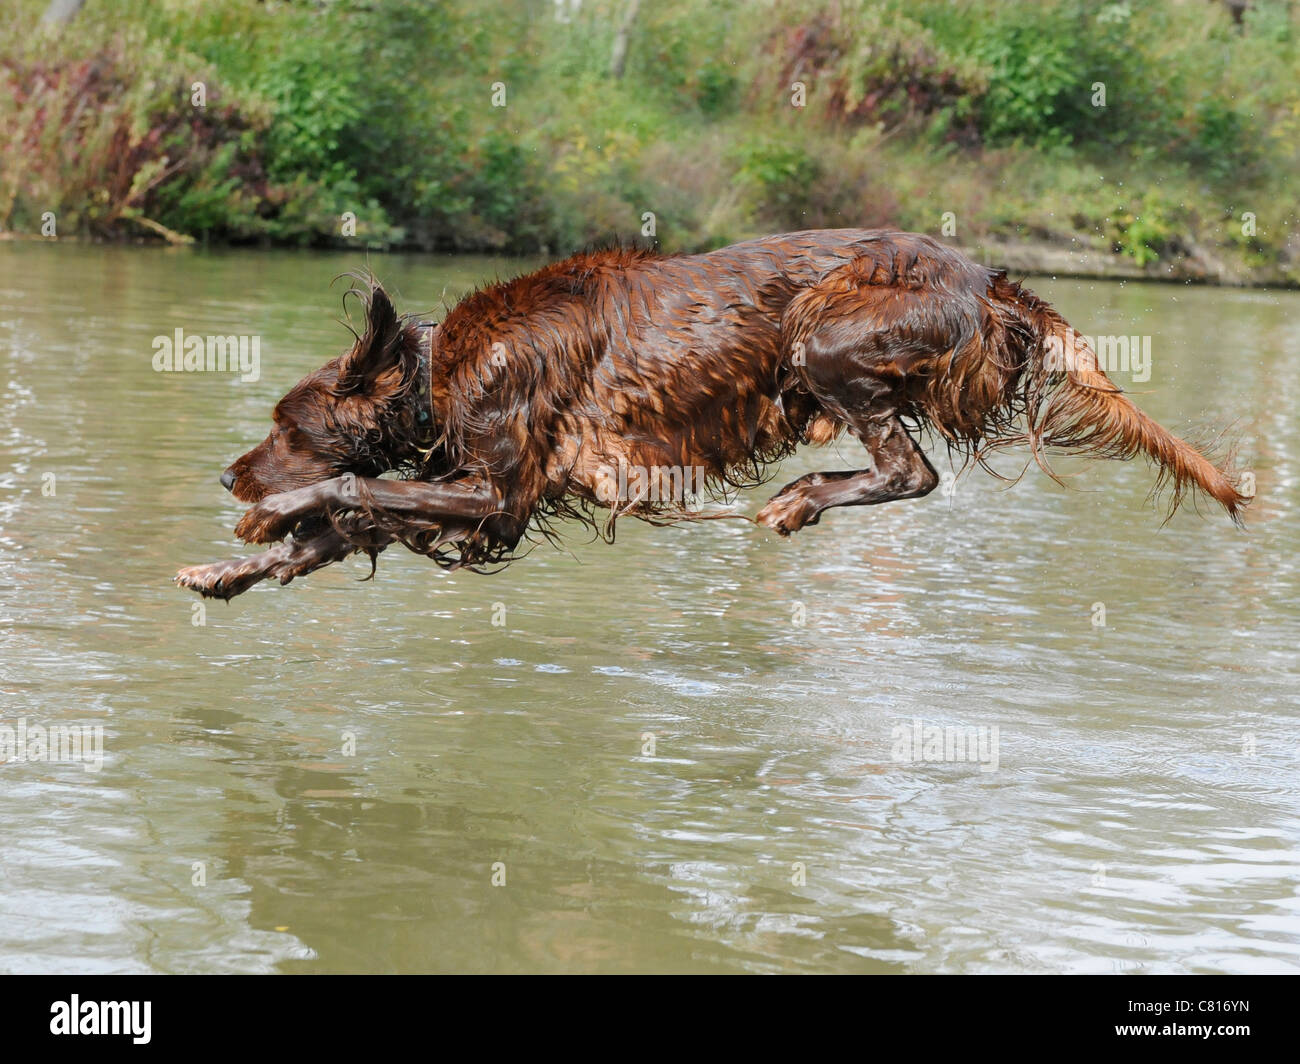 A red setter diving into a stream to have a swim Stock Photo